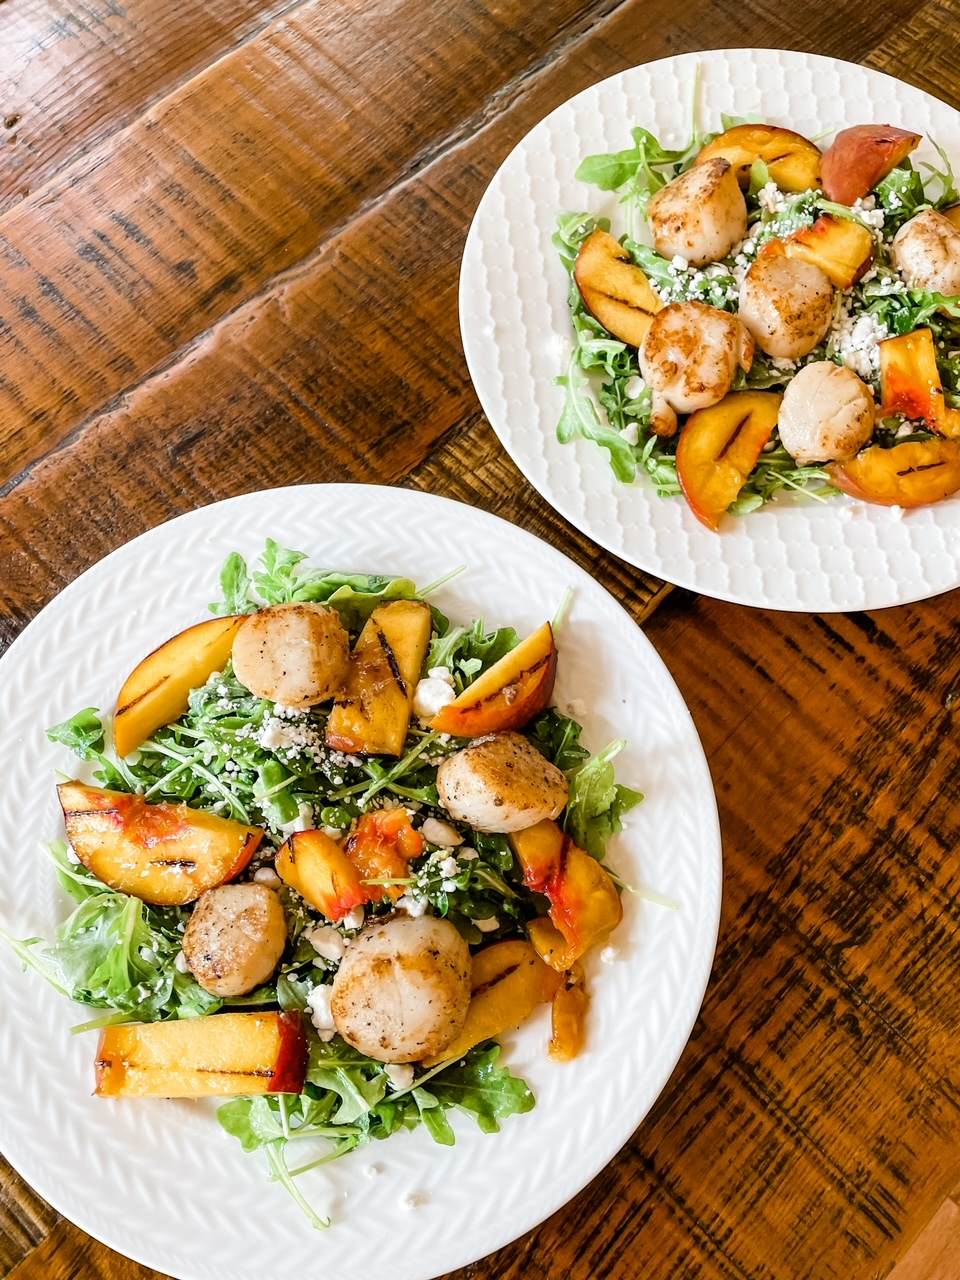 Two plates filled with the Arugula Salad with Scallops and Grilled Peaches